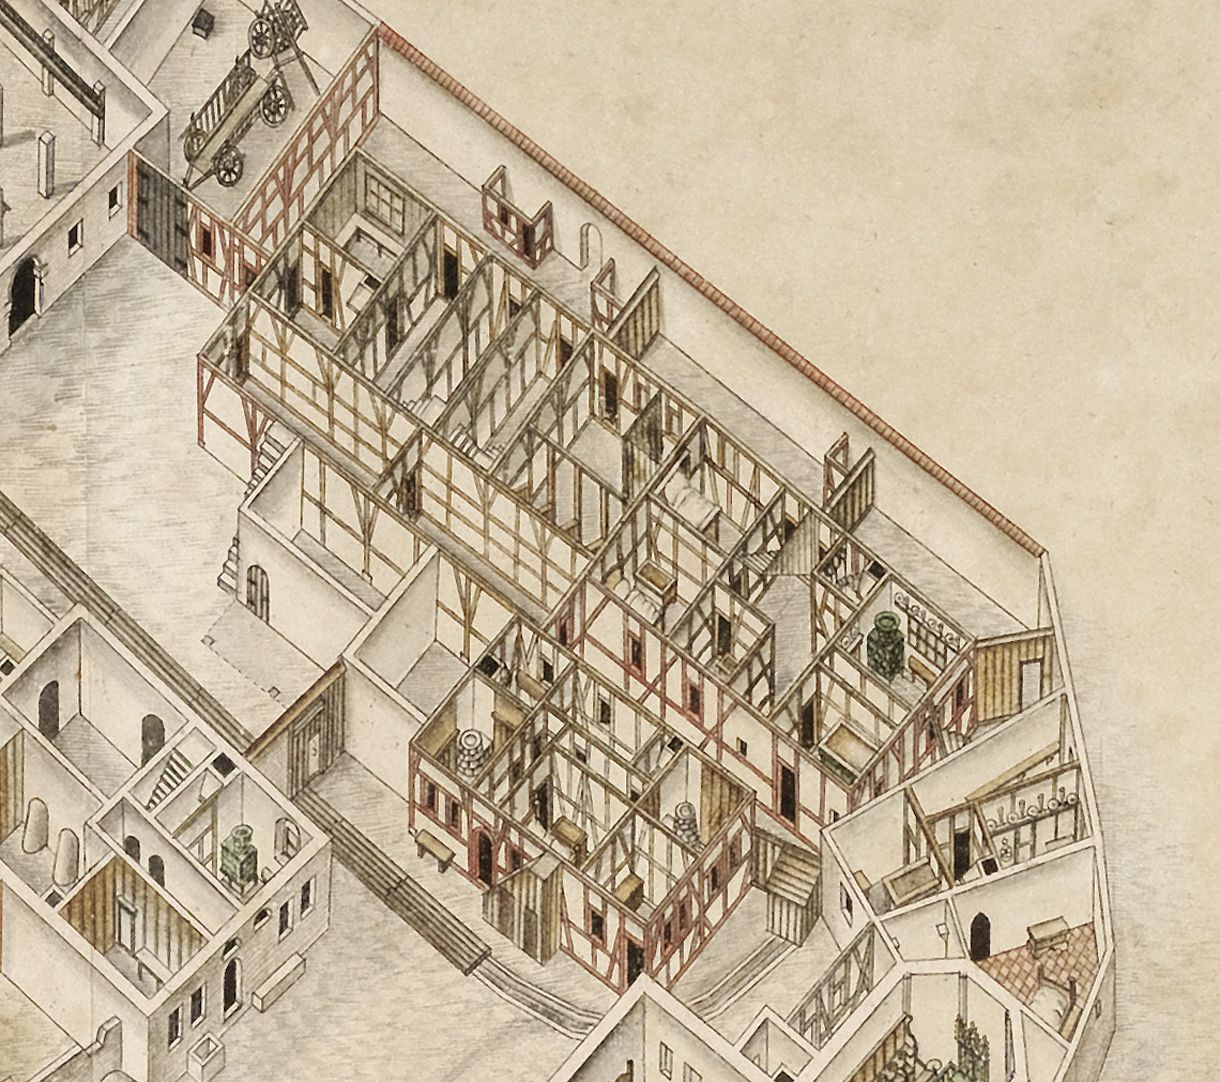 Isometric Picture of the whole plan of the German House in Nuremberg with view into the ground floors Detail of the old hospice houses and tenements